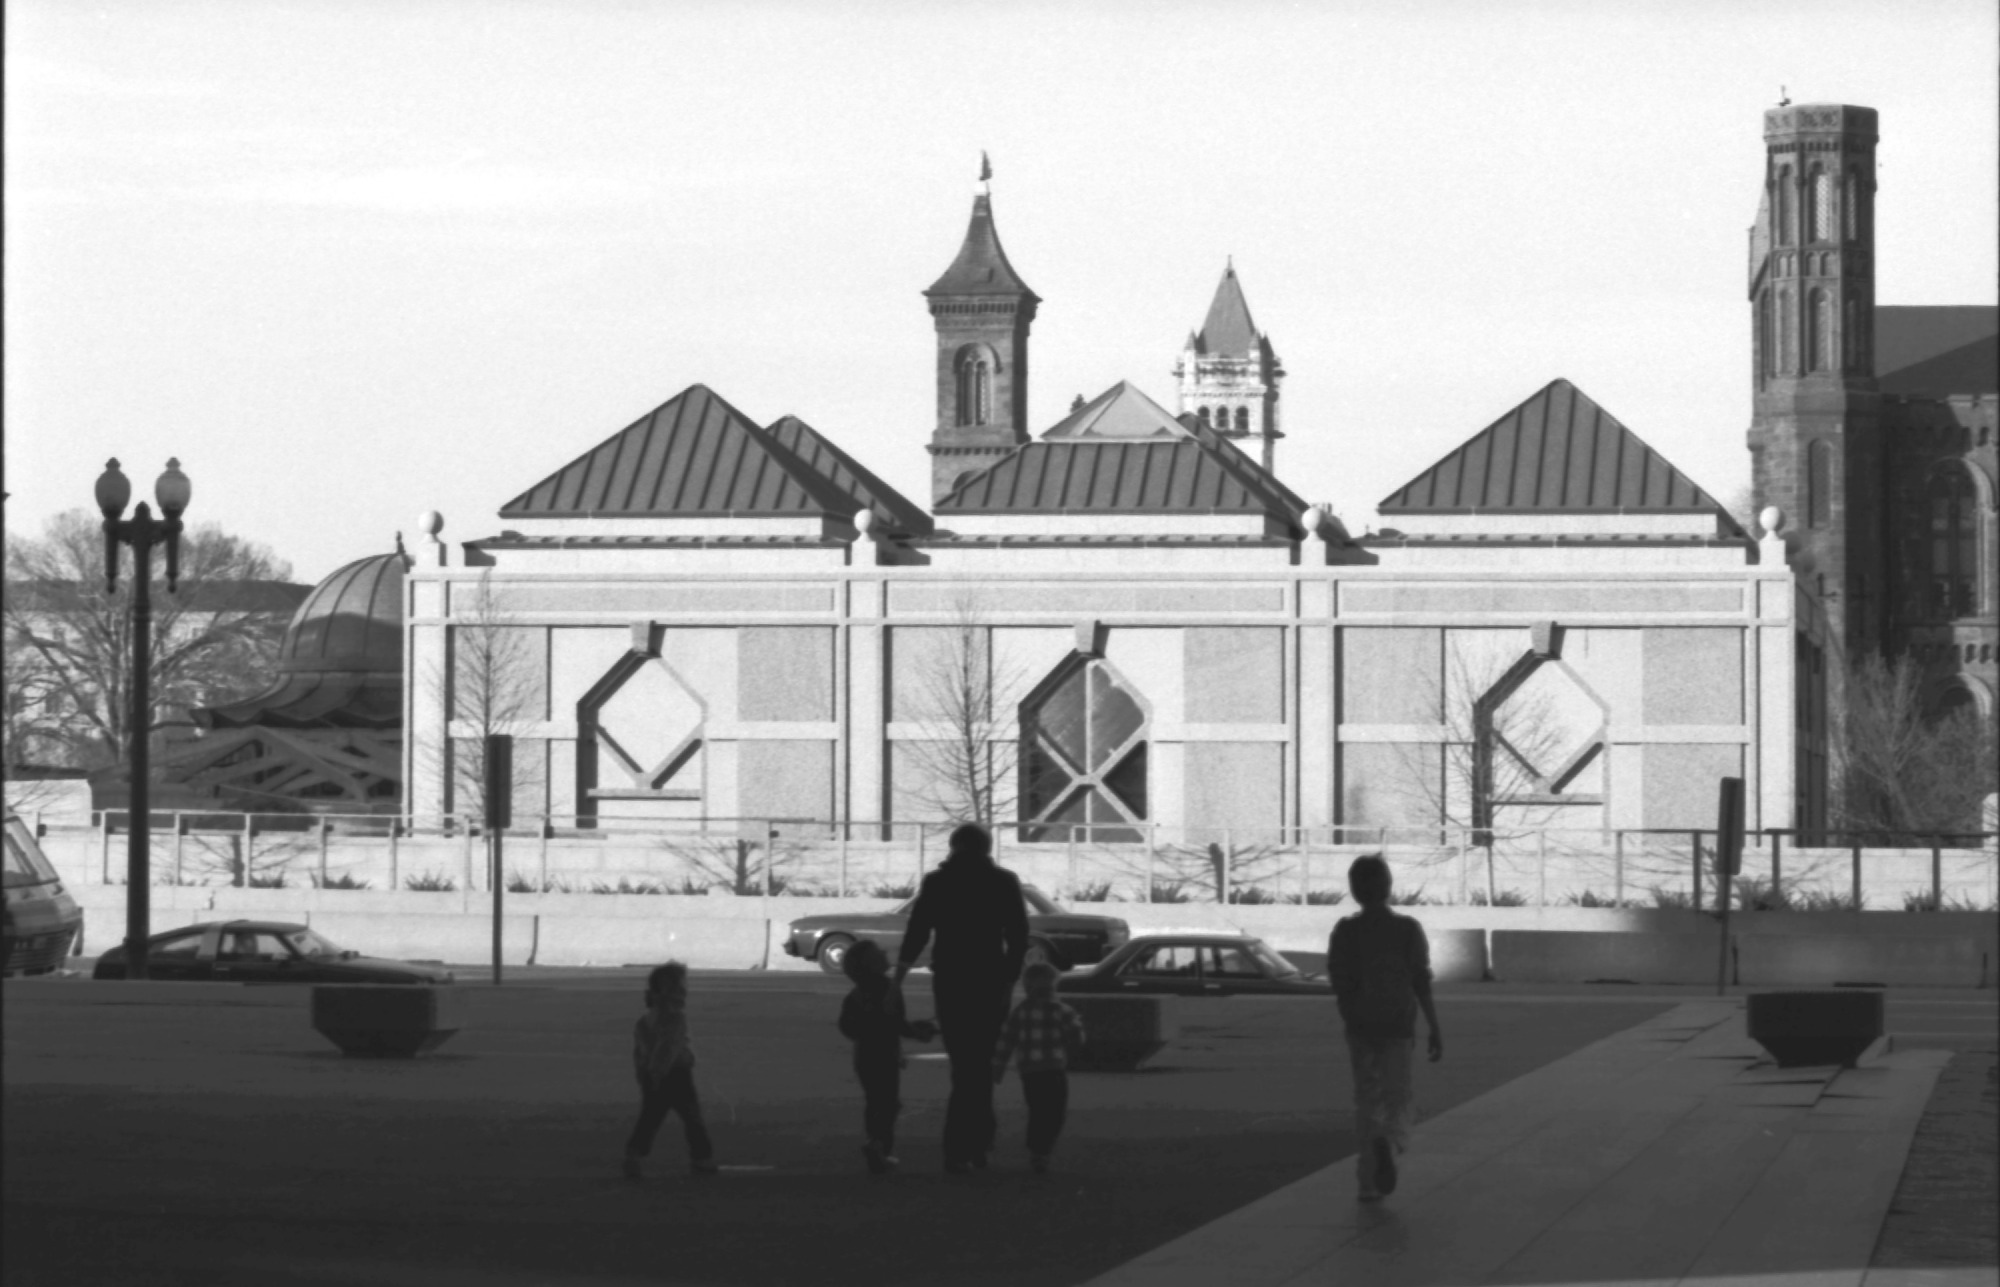 Sackler Pavilion, by Unknown, 1986, Smithsonian Archives - History Div, 86-14688-12A.